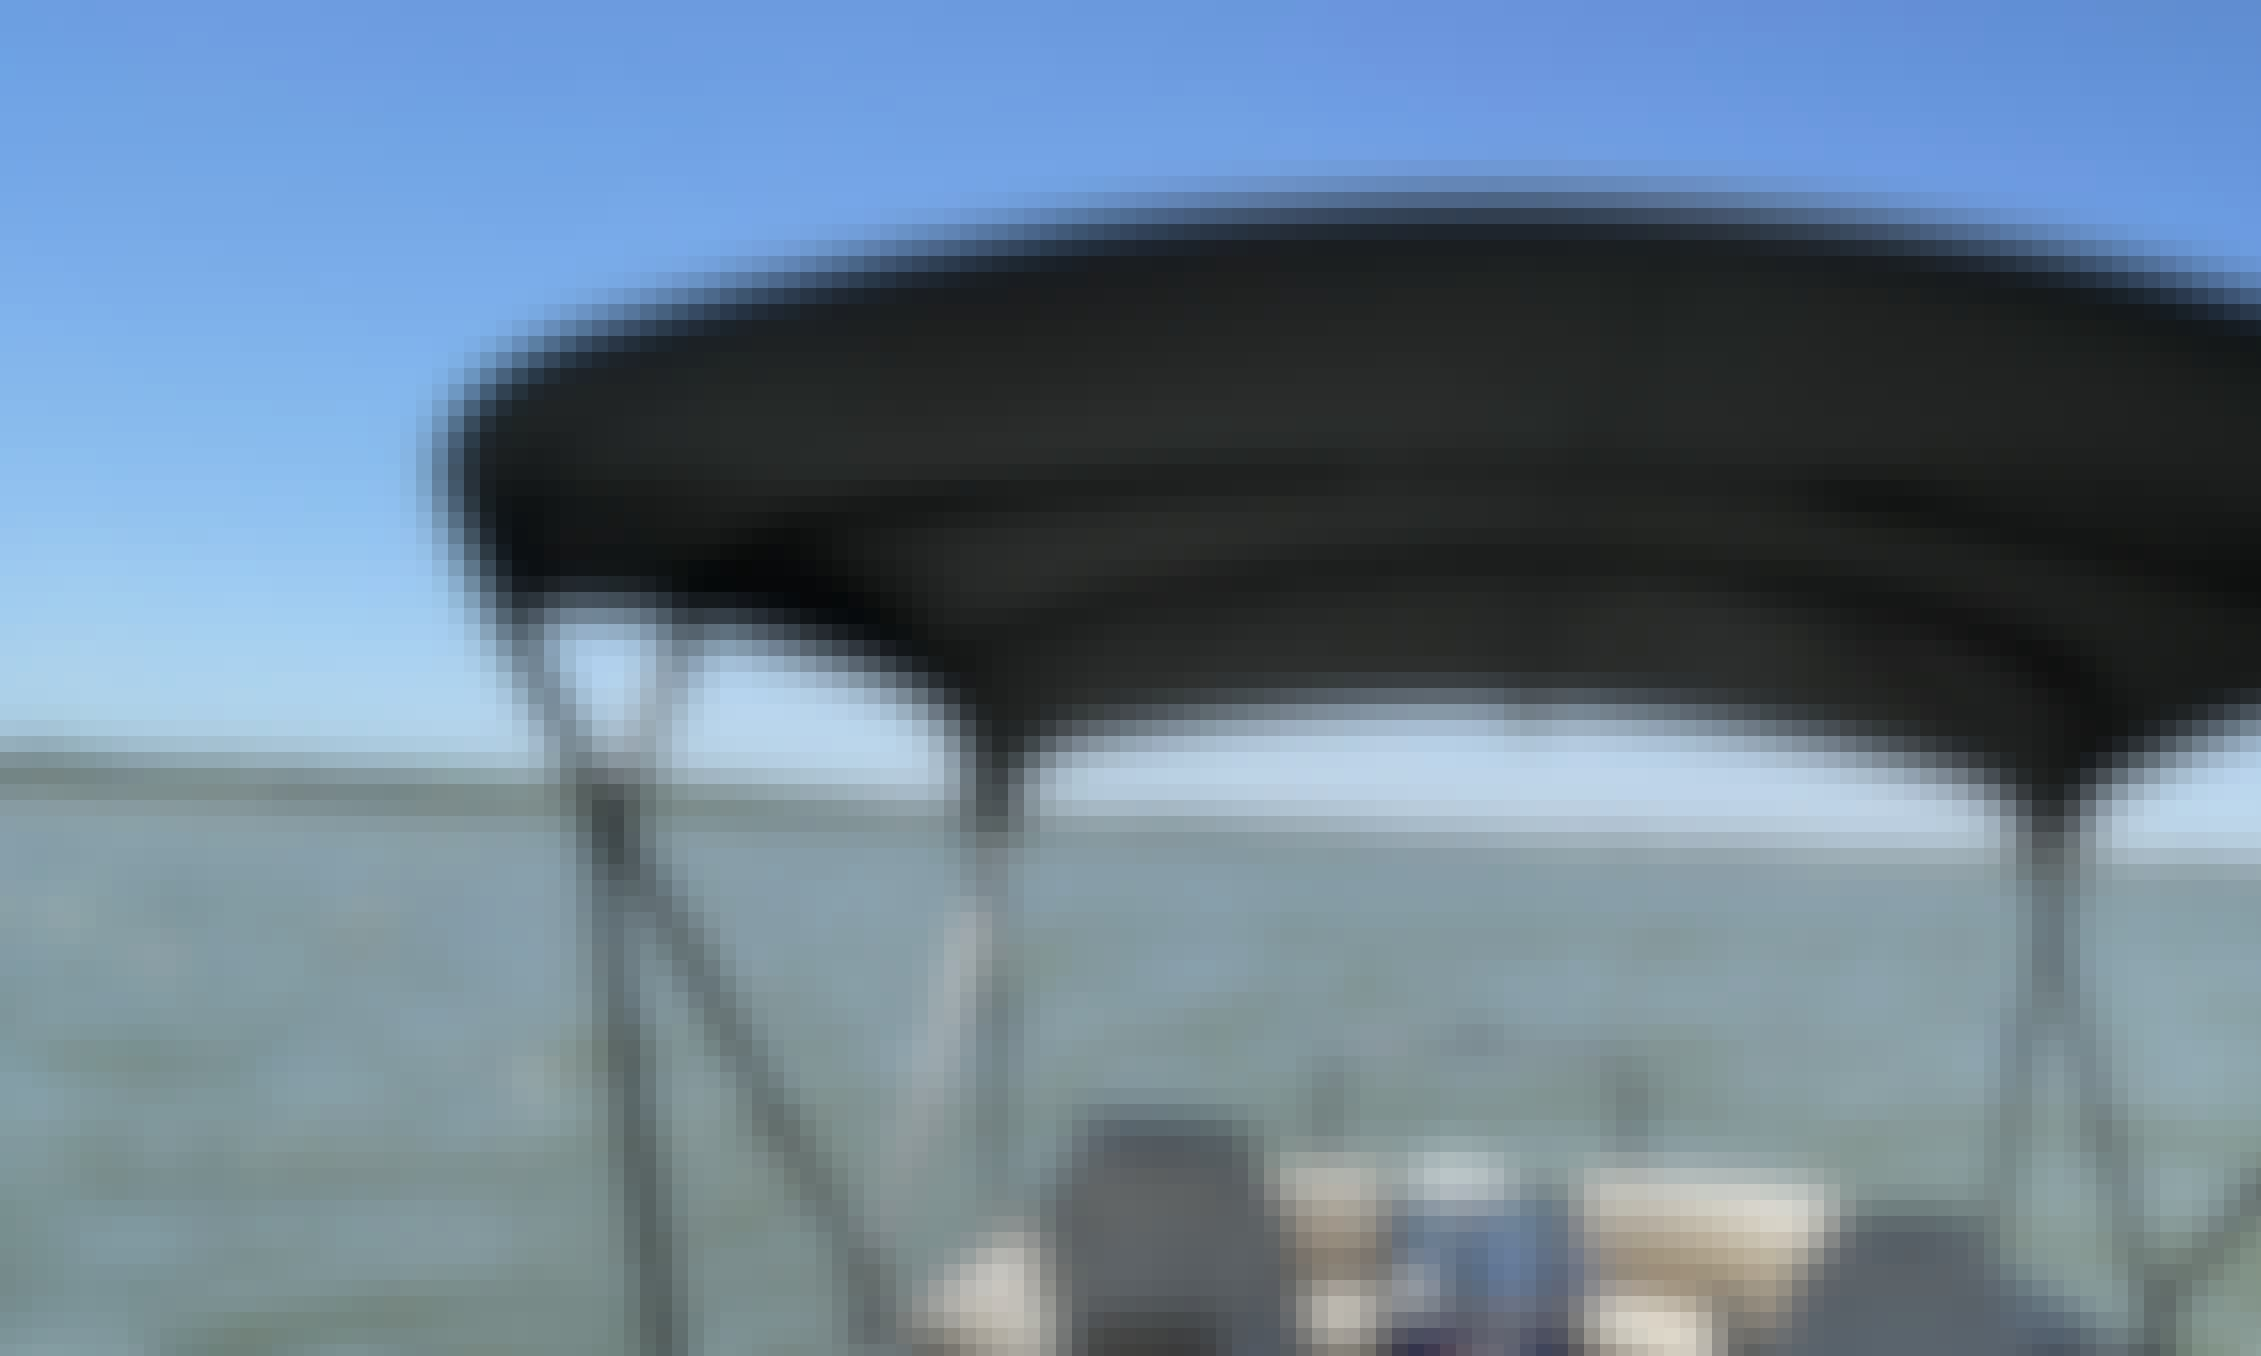 2021 25' Pontoon for rent on  Grapevine lake